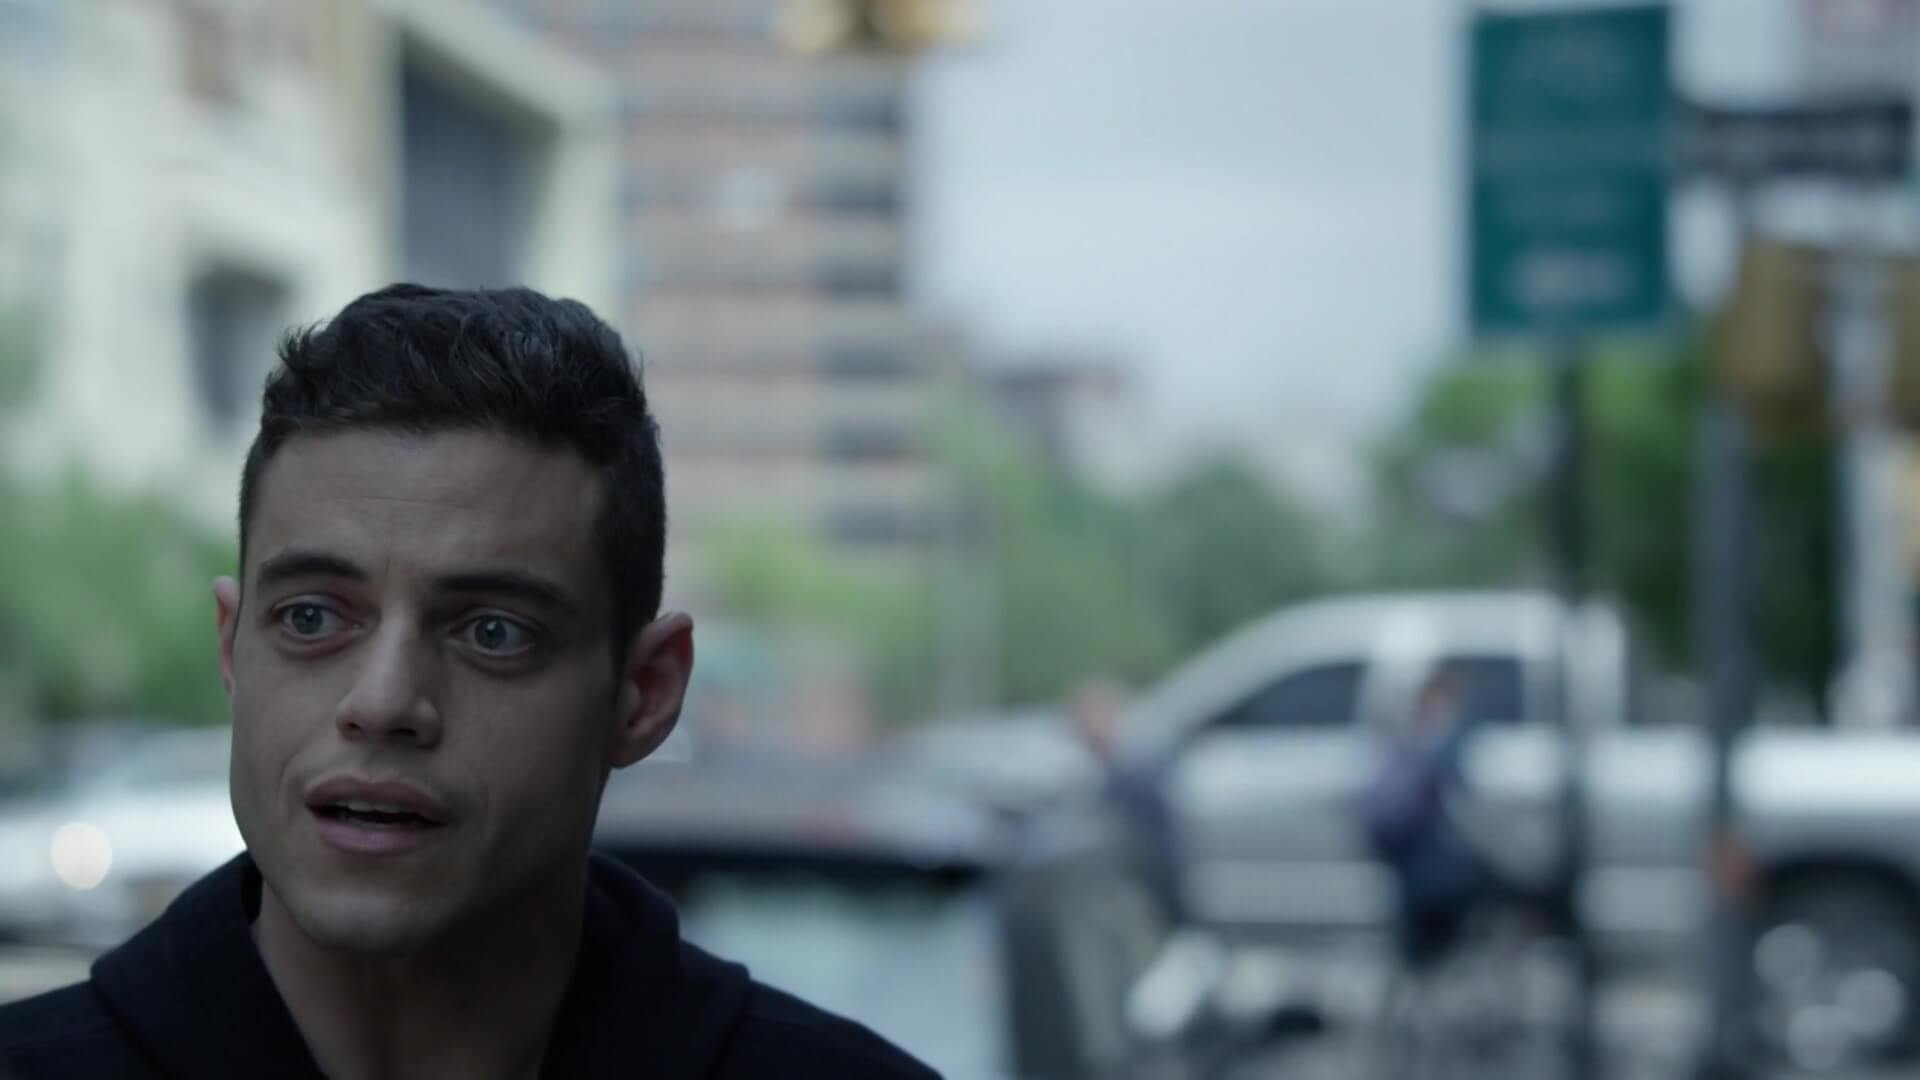 4 Unbelievable Ways Directing Styles Improve Story - Mr. Robot Framing and Composition